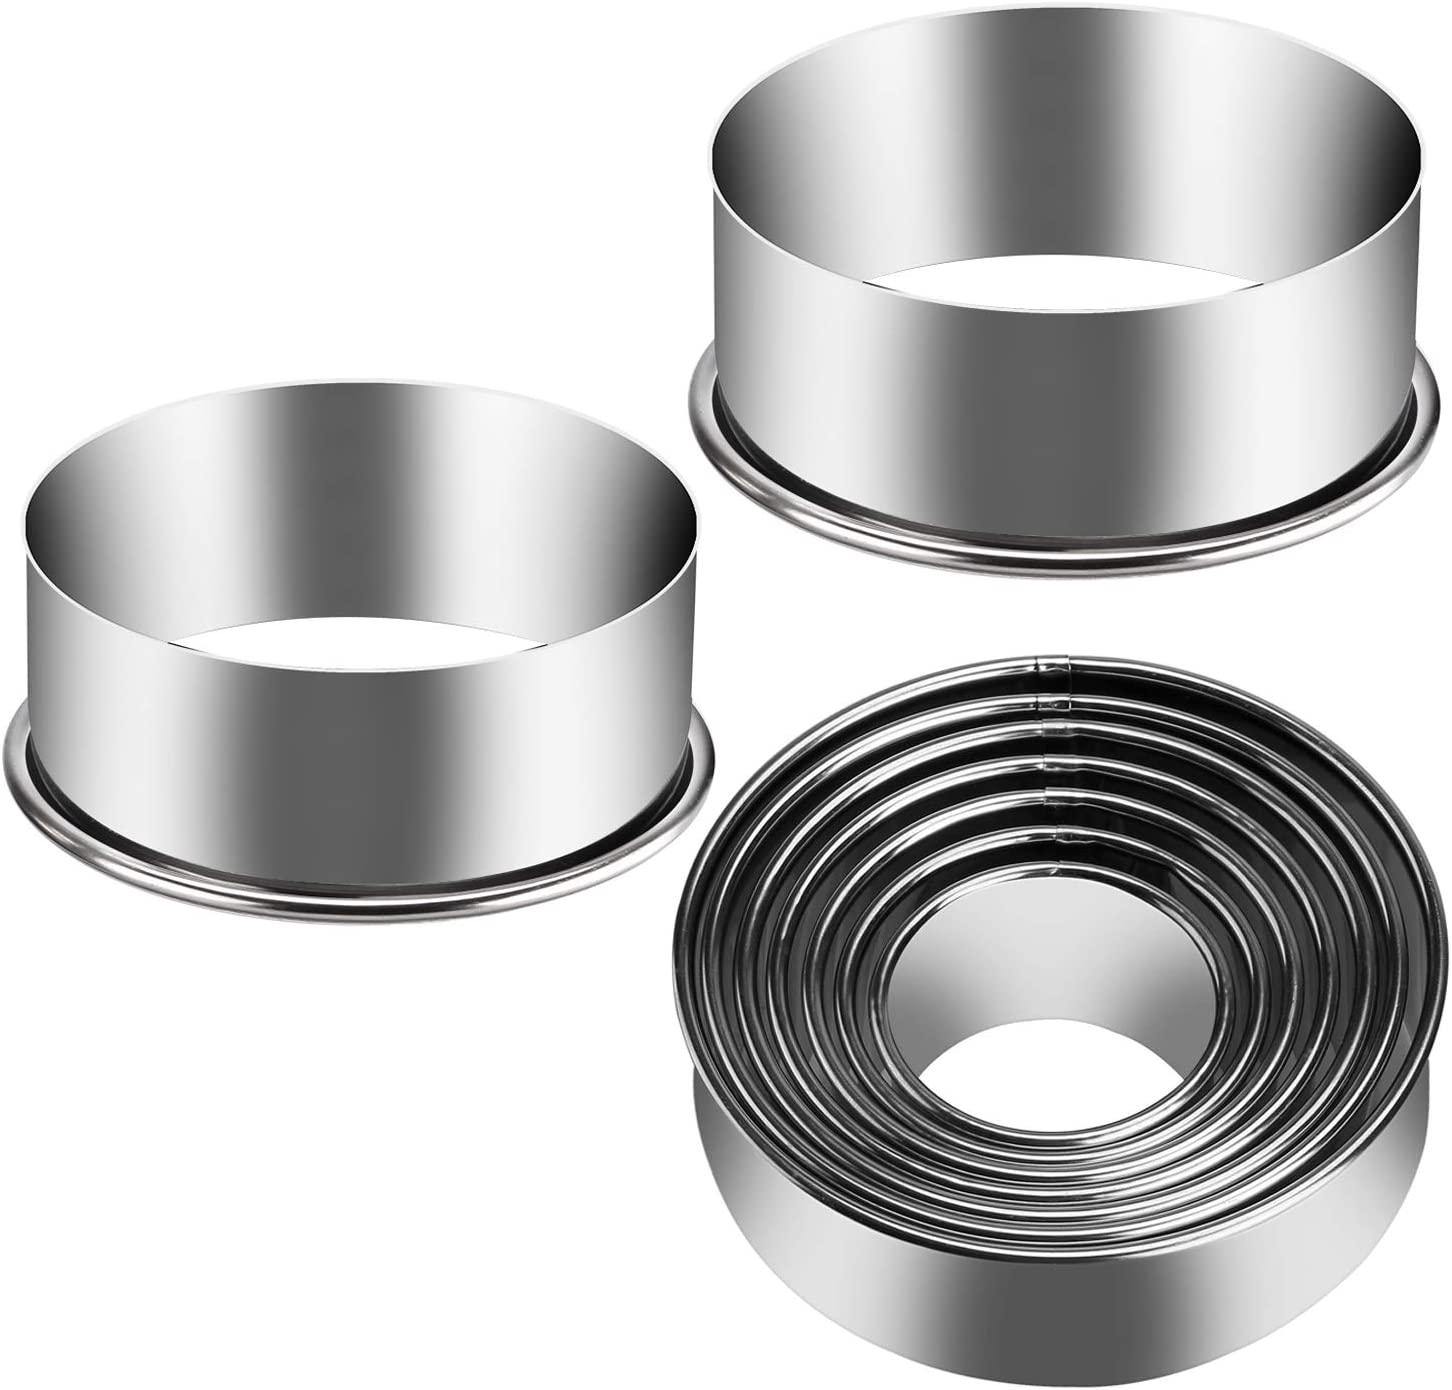 KSPOWWIN 9 Pieces Stainless Steel Cookie Cutter Set Biscuit Plain Edge Round Cutters Metal Ring Baking Molds Ranging from 2-6 Inches